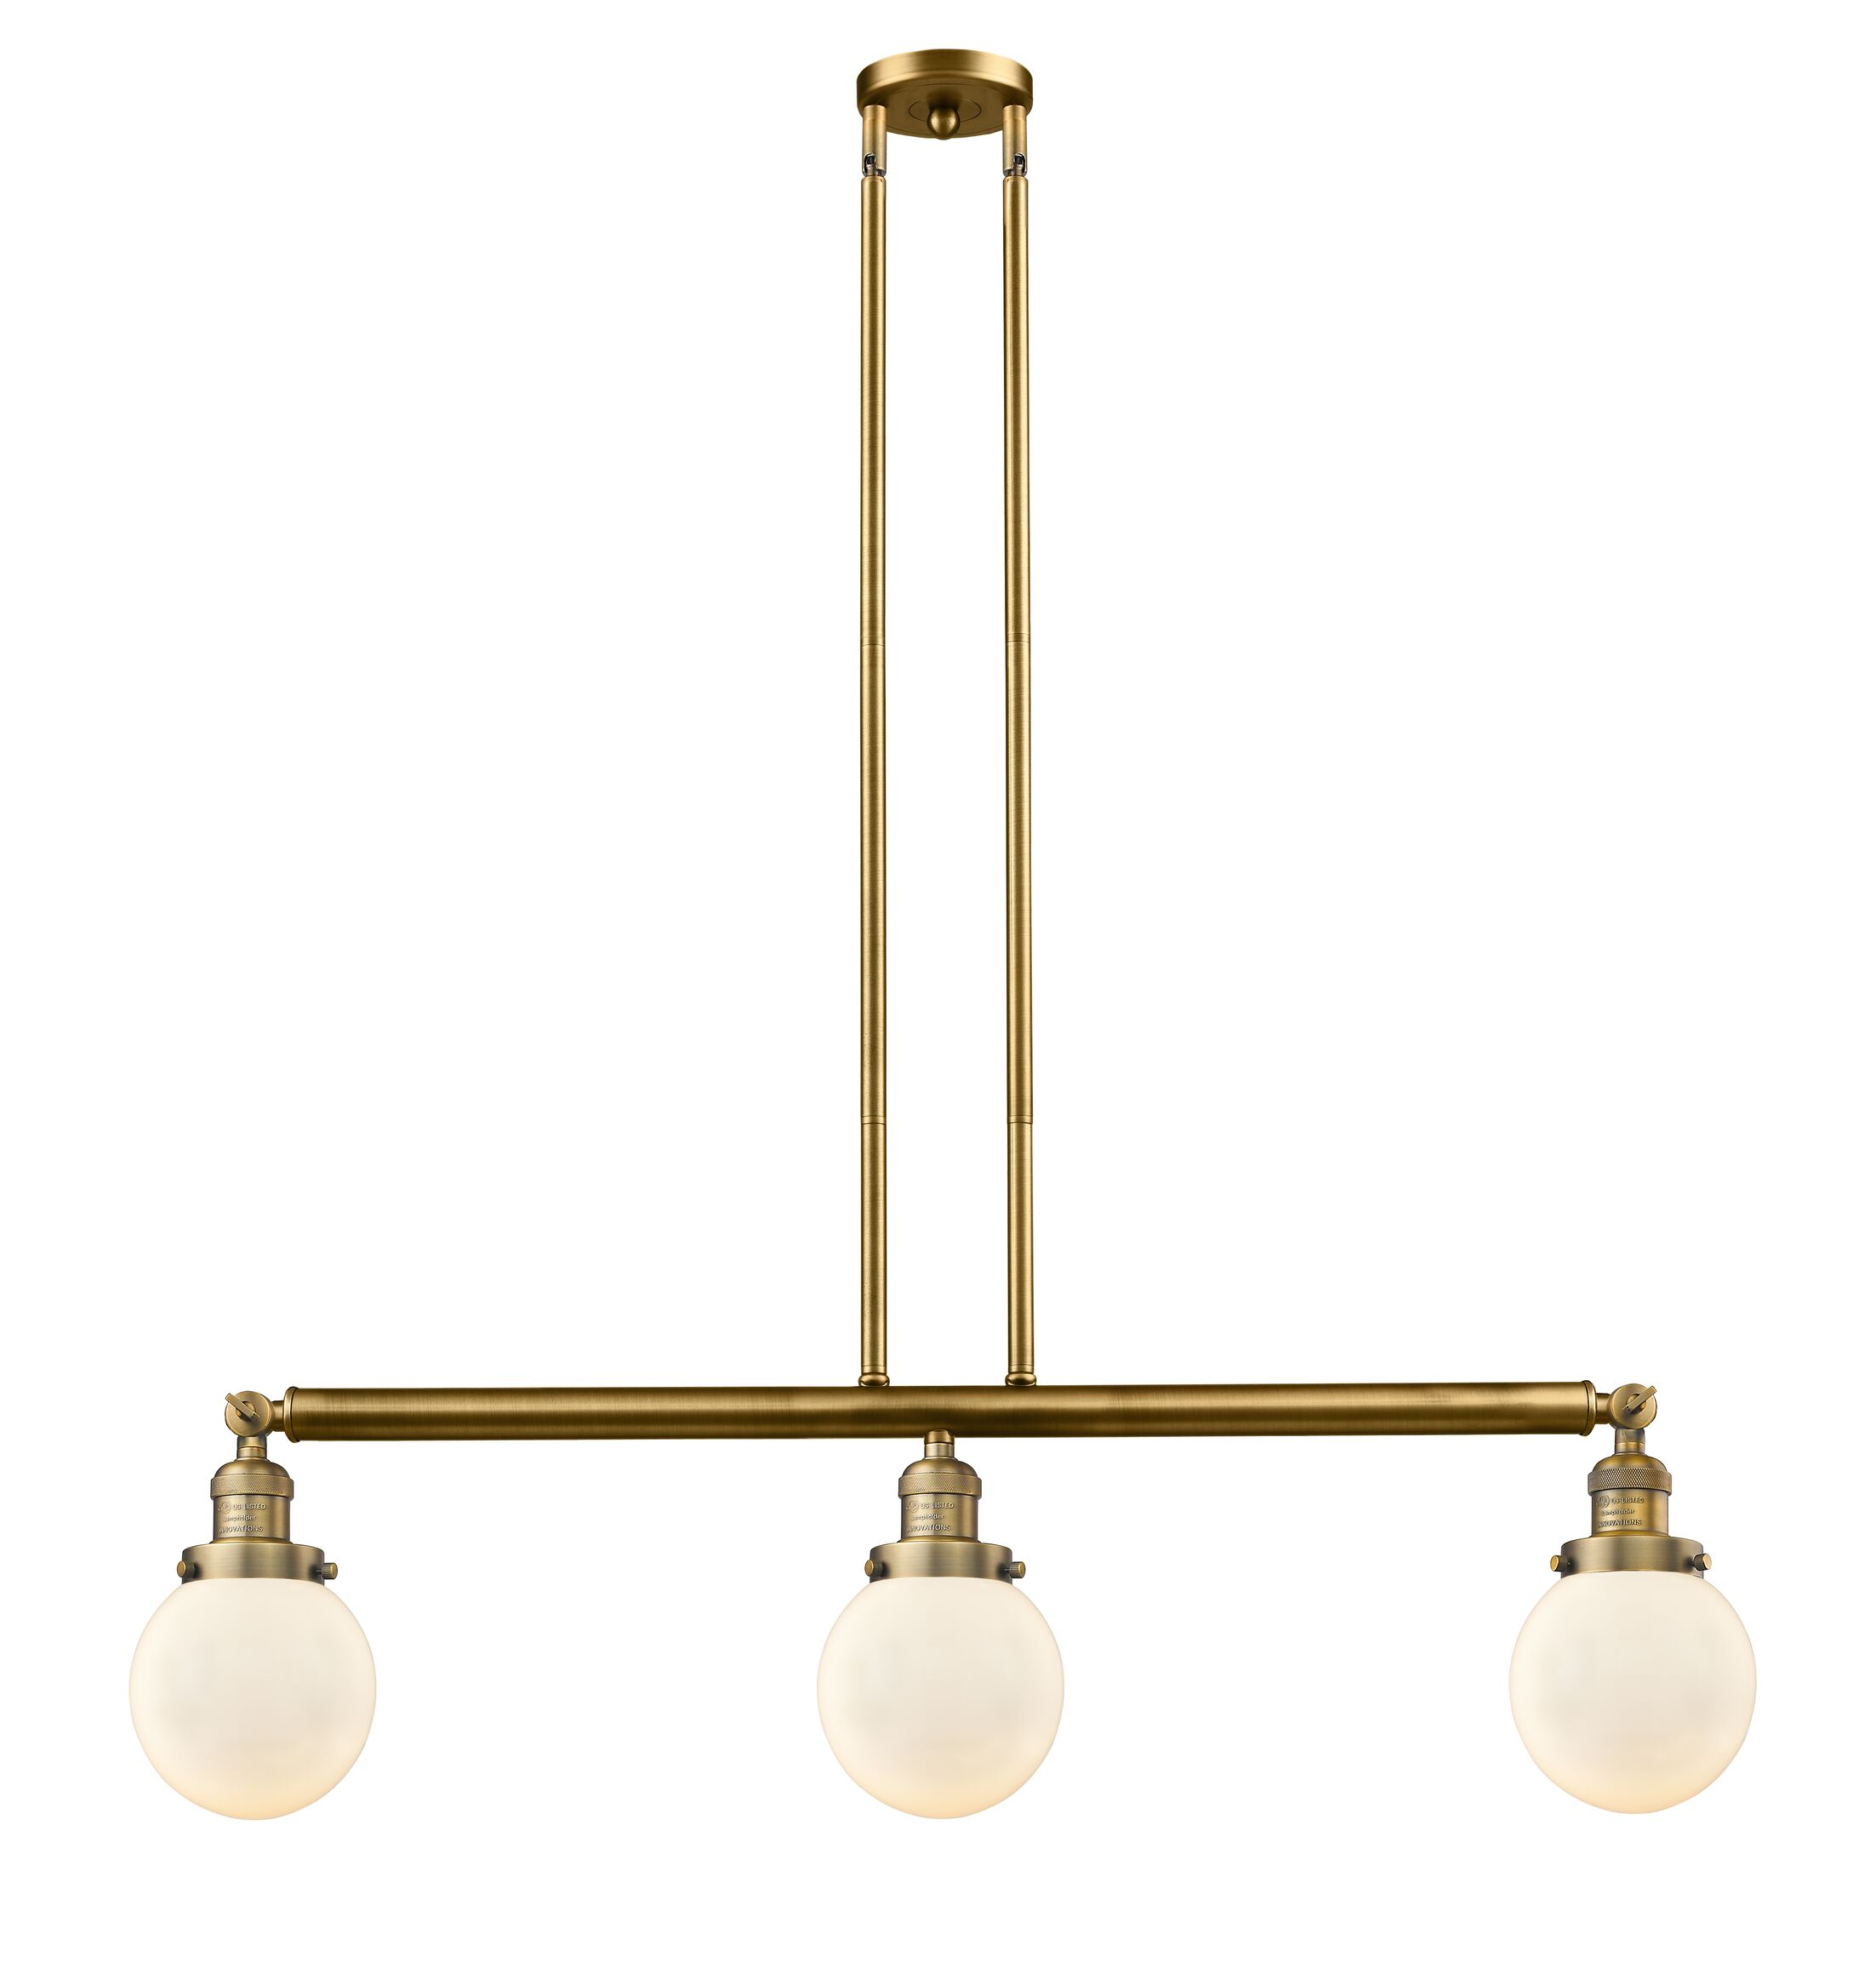 Jackeline 3-Light Kitchen Island Pendant Bulb Type: LED, Shade Color: Seedy, Finish: Brushed Brass